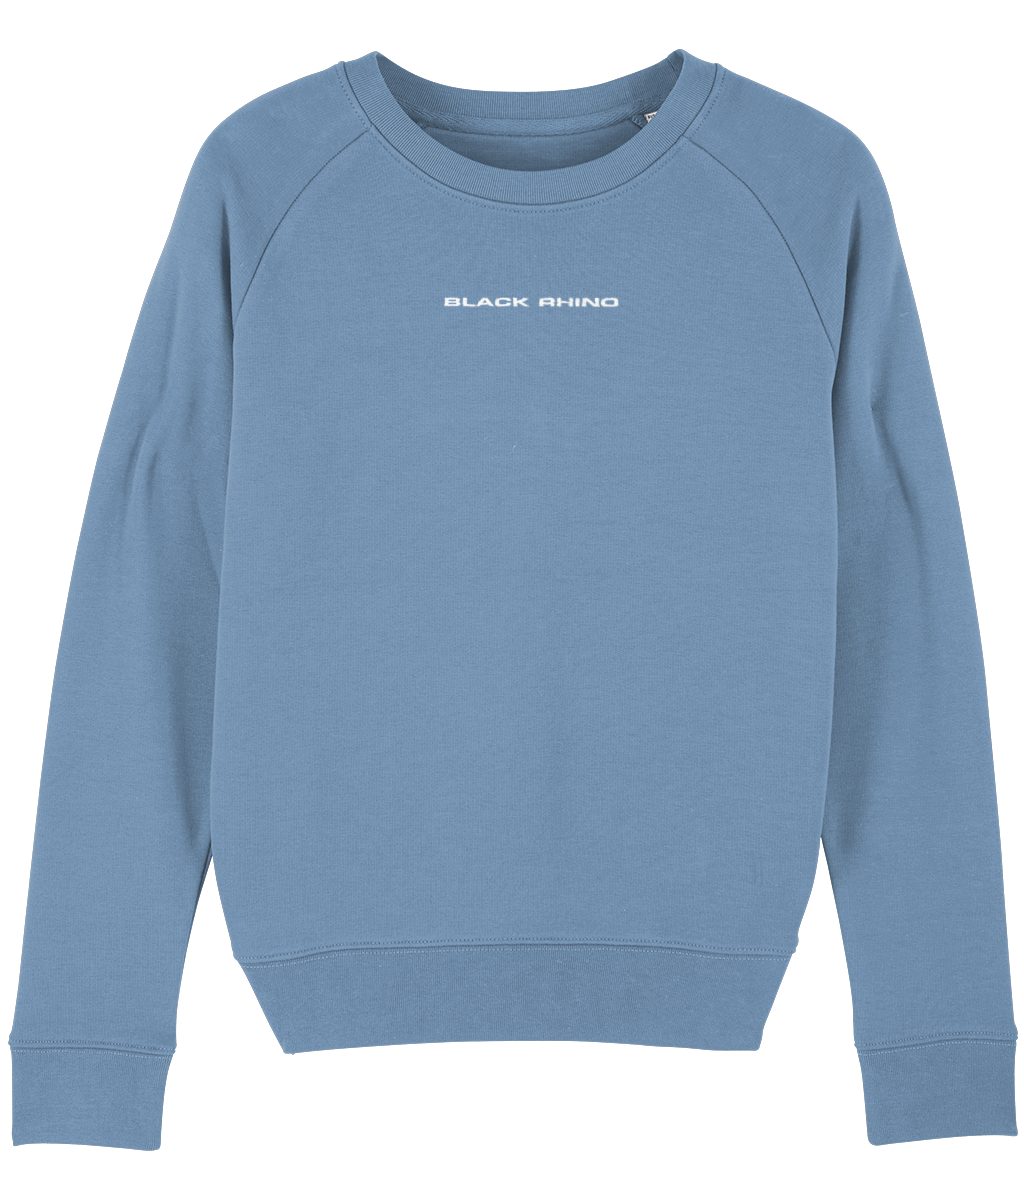 Mid Heather Blue Classic Crew Neck Sweatshirt